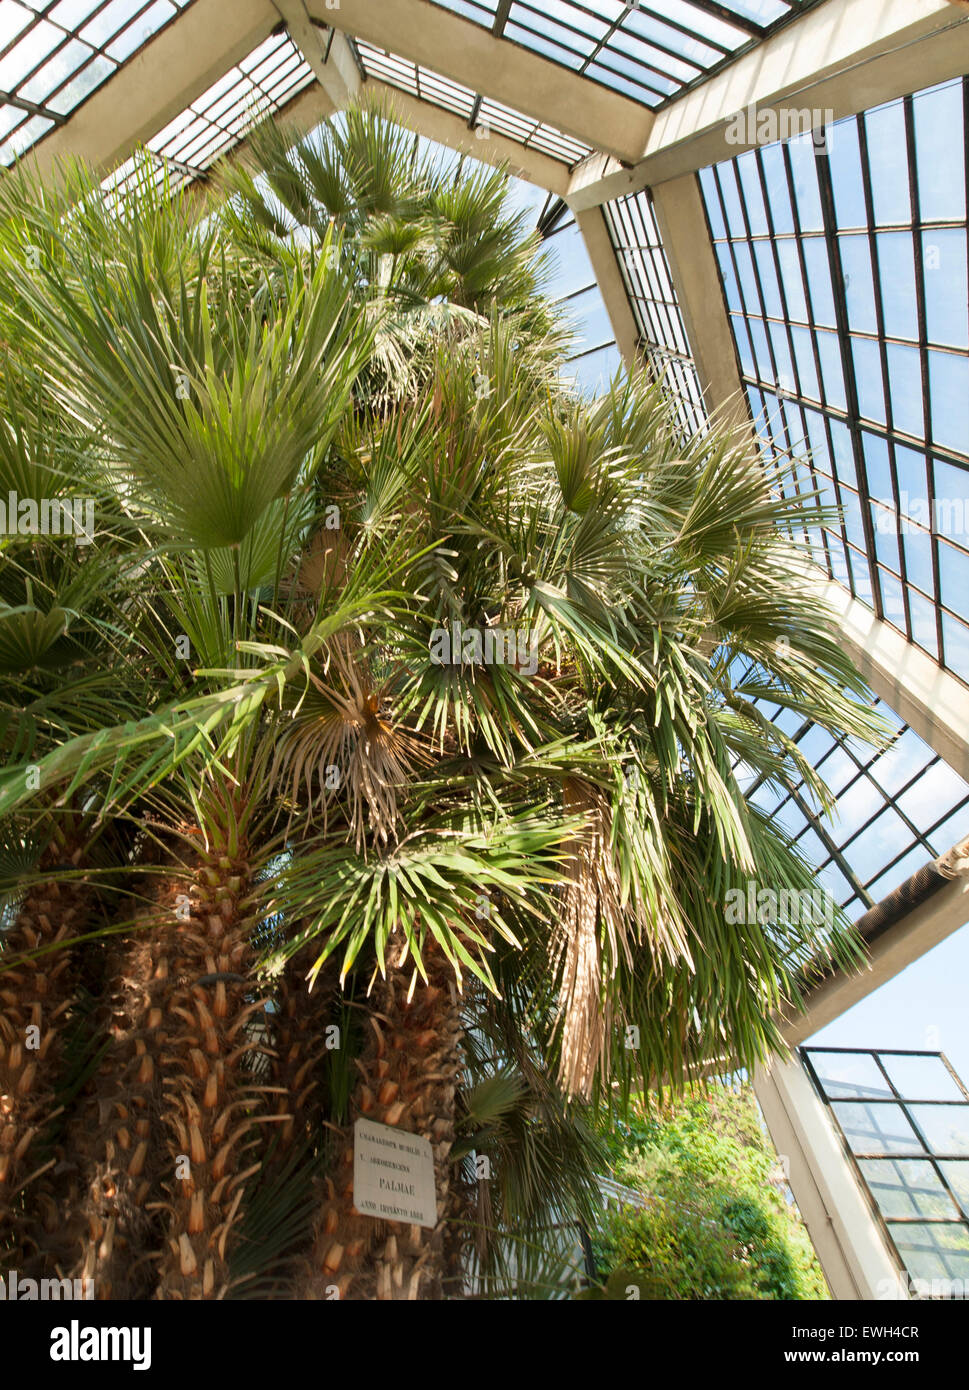 The so-called 'Goethe Palm' at Padua's Orto Botanico, the world's oldest academic botanical garden. - Stock Image